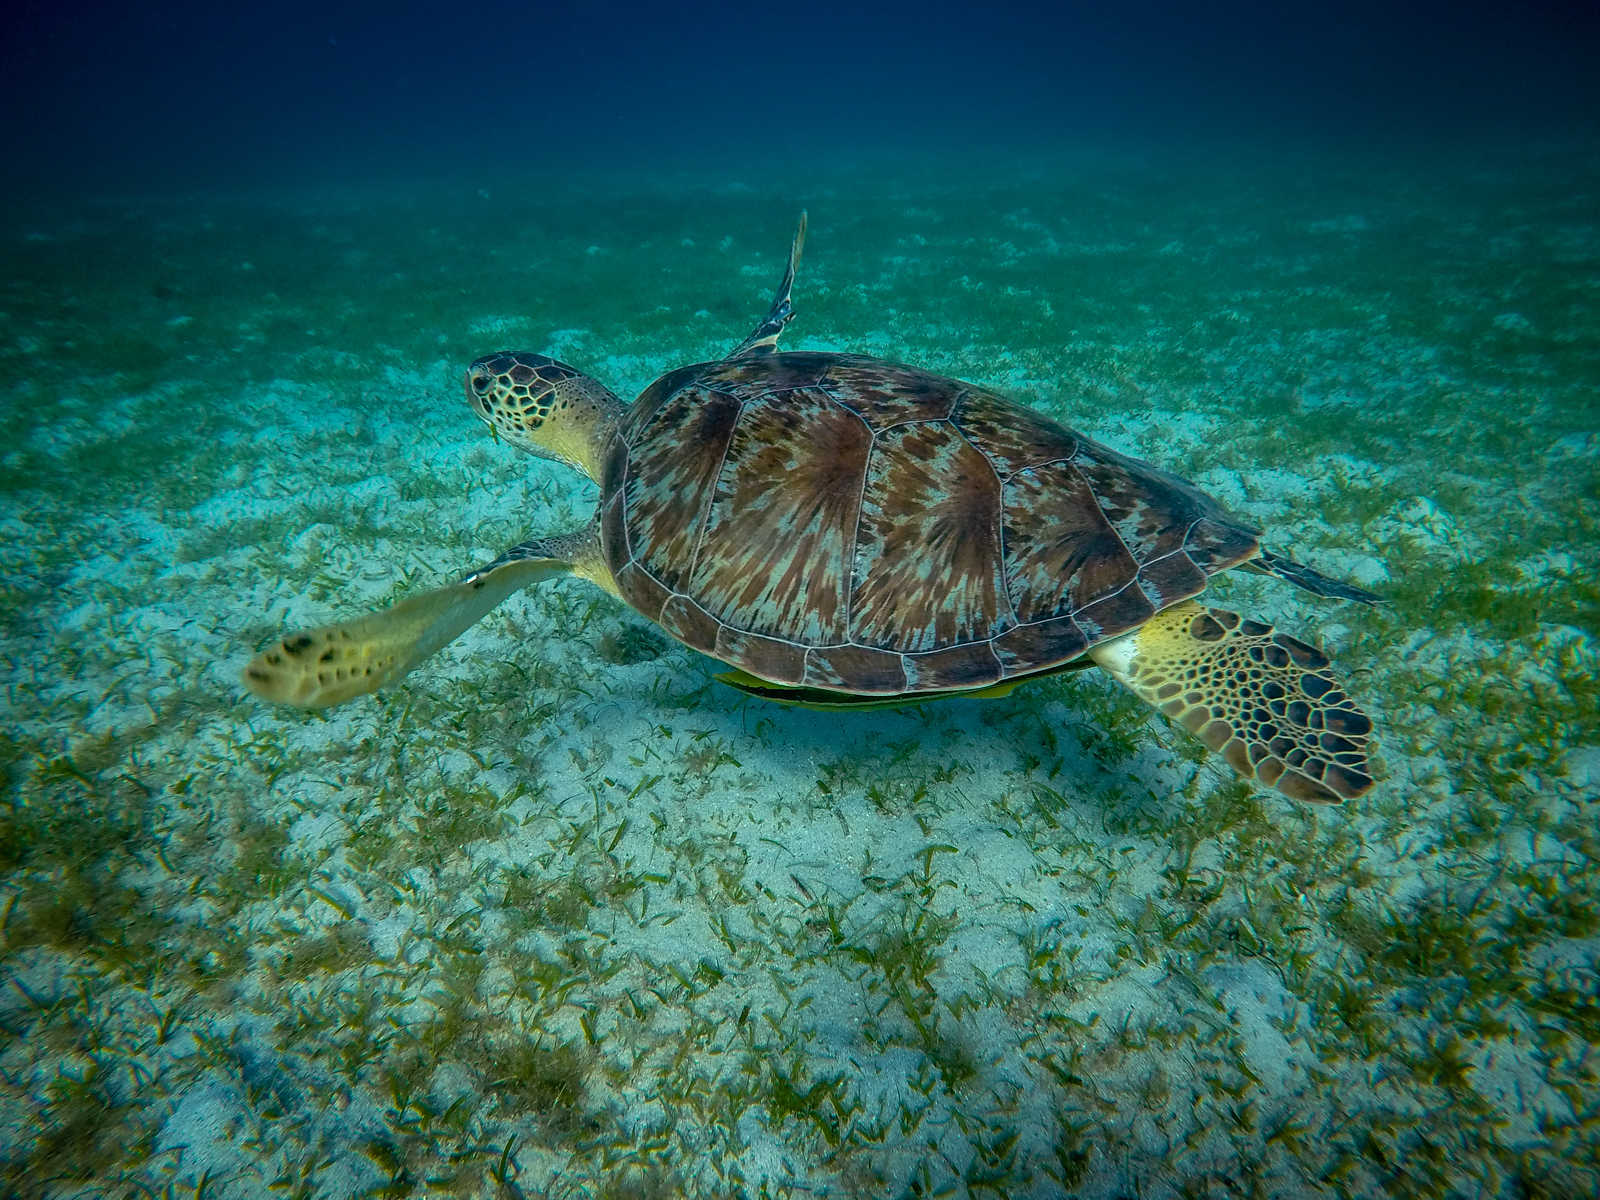 A huge green sea turtle welcomed us to our morning swim.